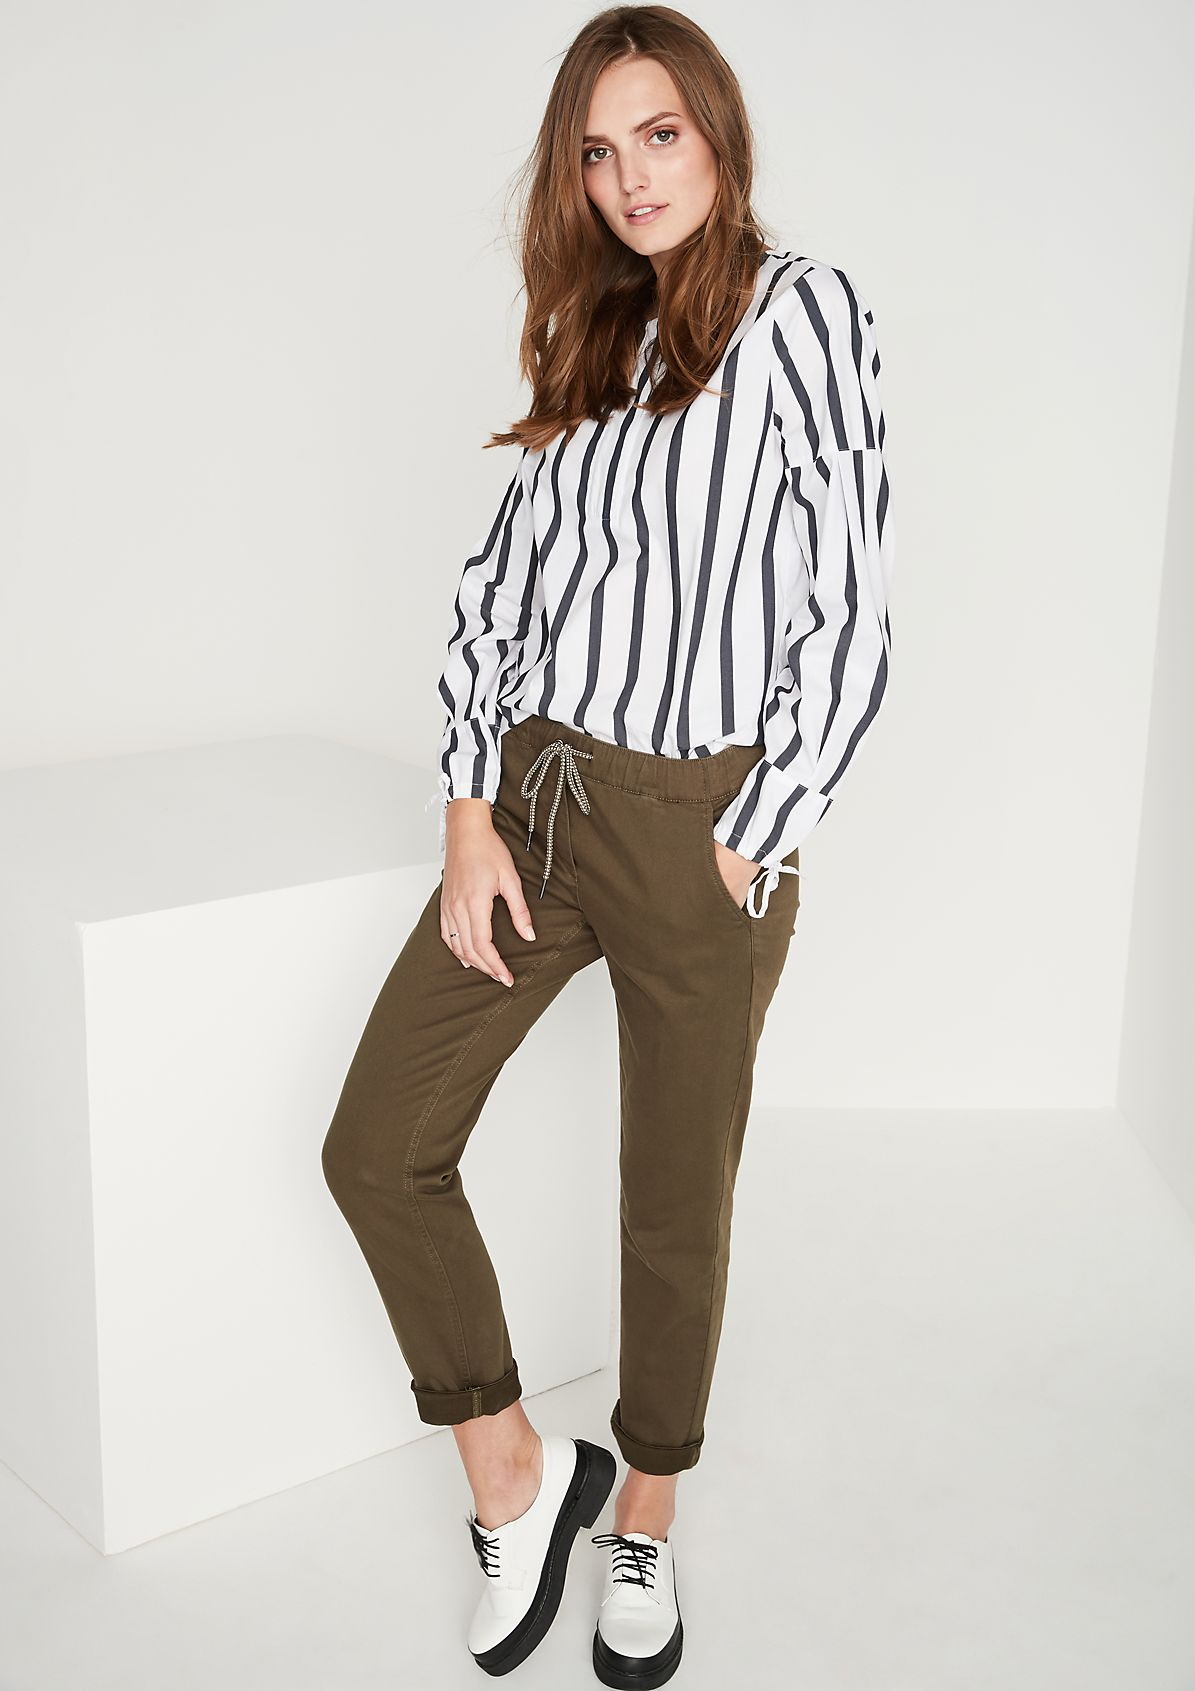 Elegant blouse with sophisticated details from comma